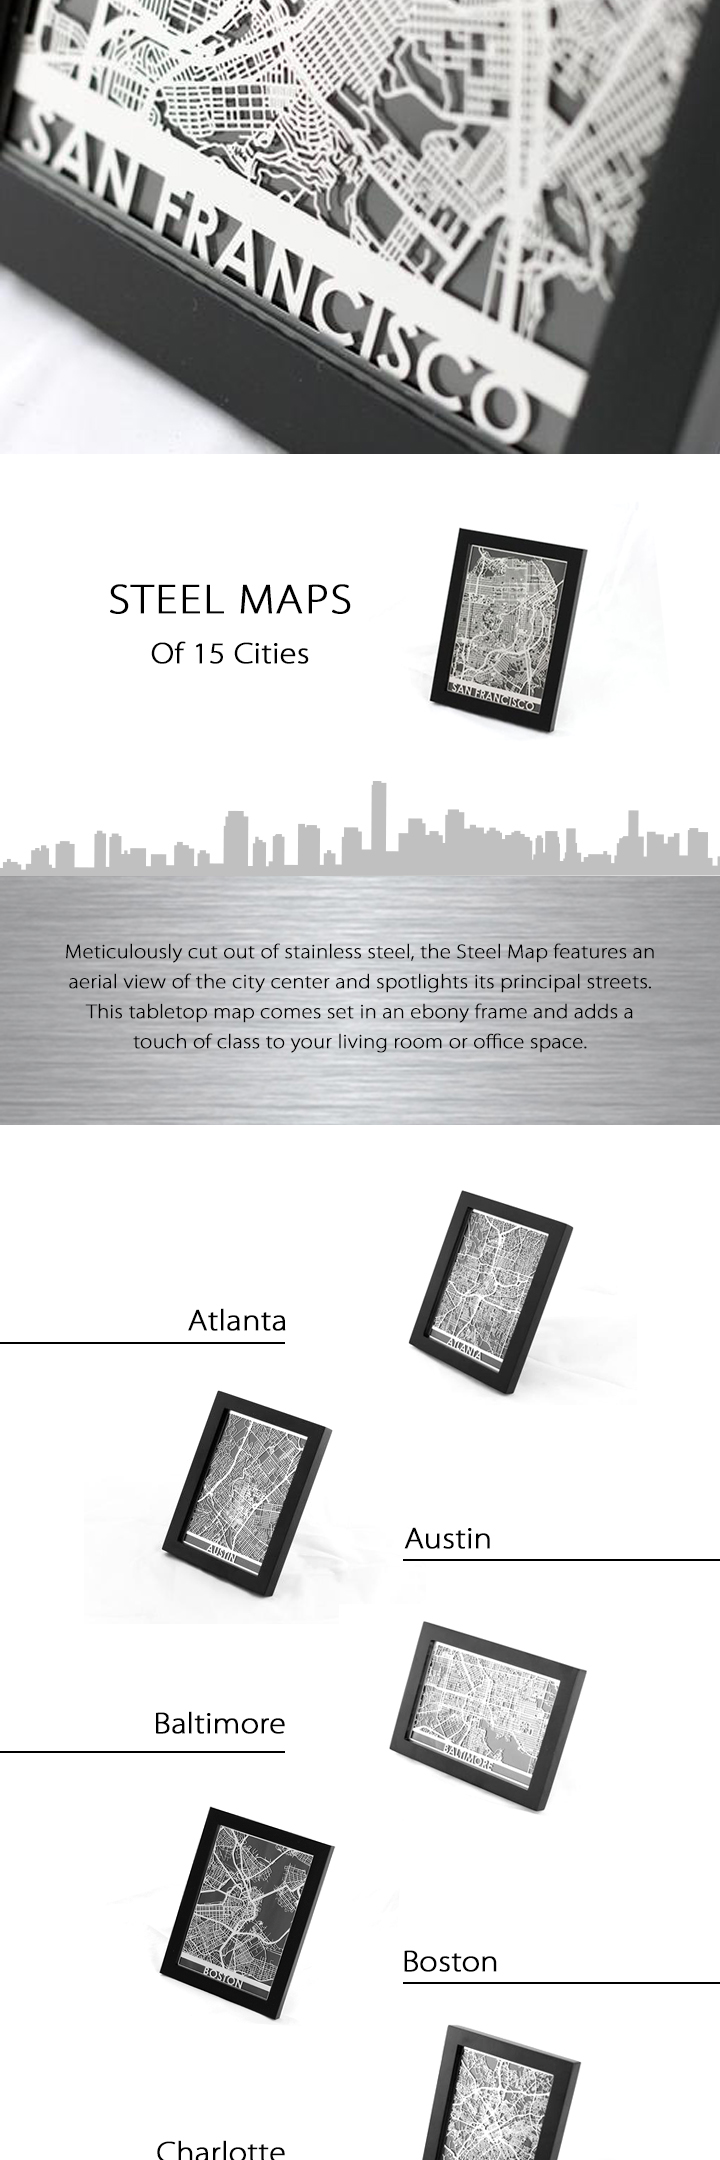 Steel Maps For US Cities Steel Dorm And Box - Steel maps of us cities